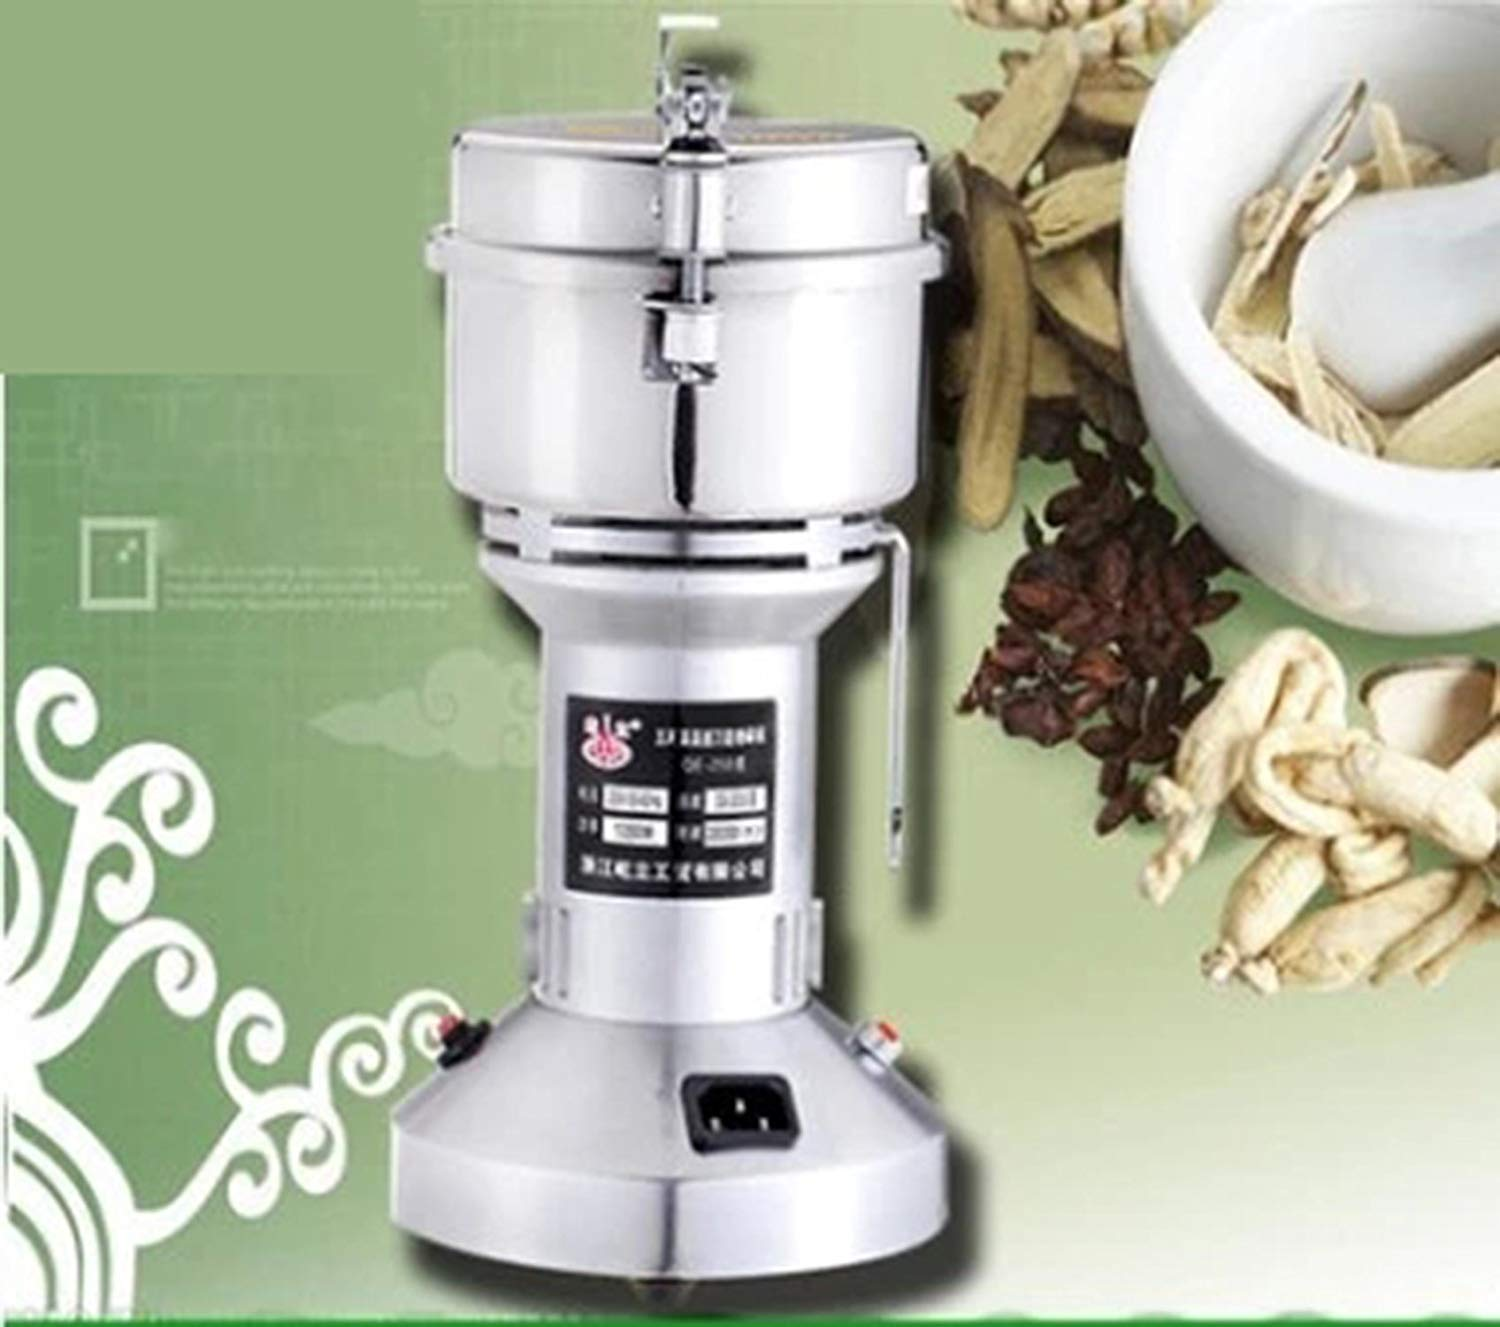 ZGUO 250g Commercial electric stainless steel grain grinder mill Spice Herb Cereal Mill Grinder Flour Mill pulverizer